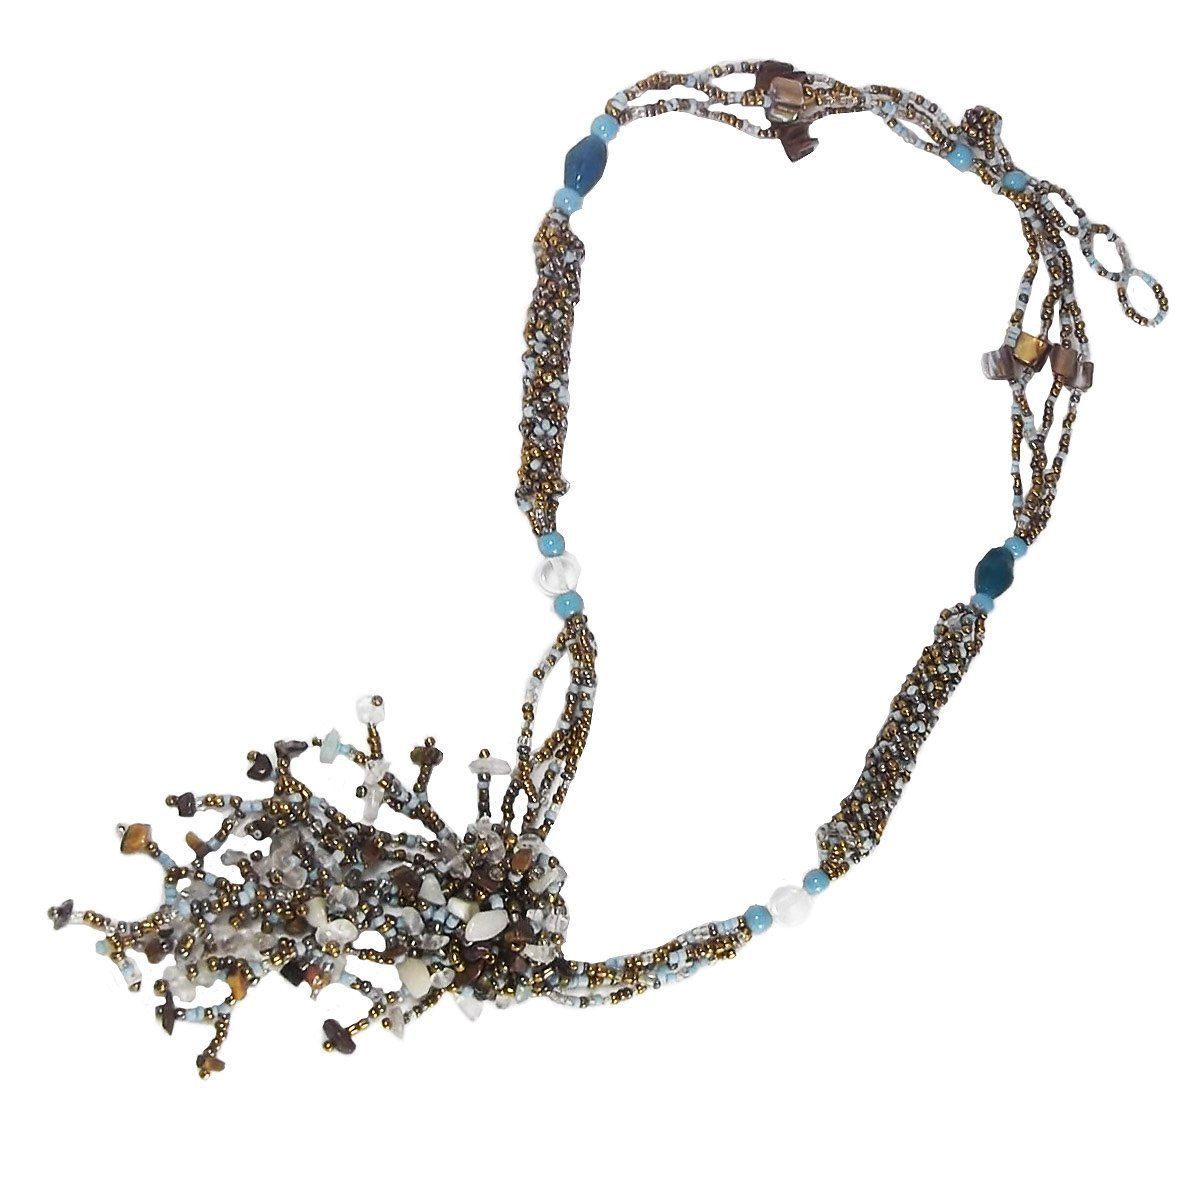 Ice Bijoux Turquoise Beads with Shells Necklace For Women Y Drop Long Necklace 27.5' Malaysia Collection